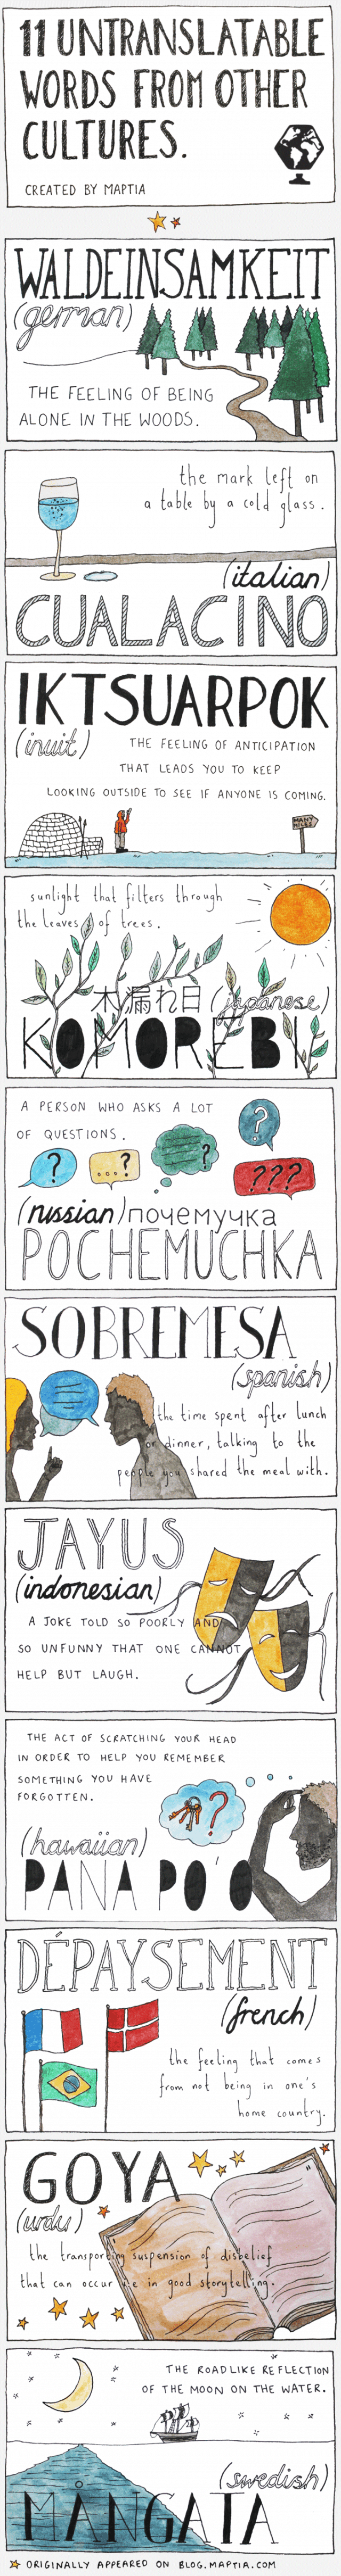 11-untranslatable-words-from-other-cultures_52152bbe65e85-640x4841